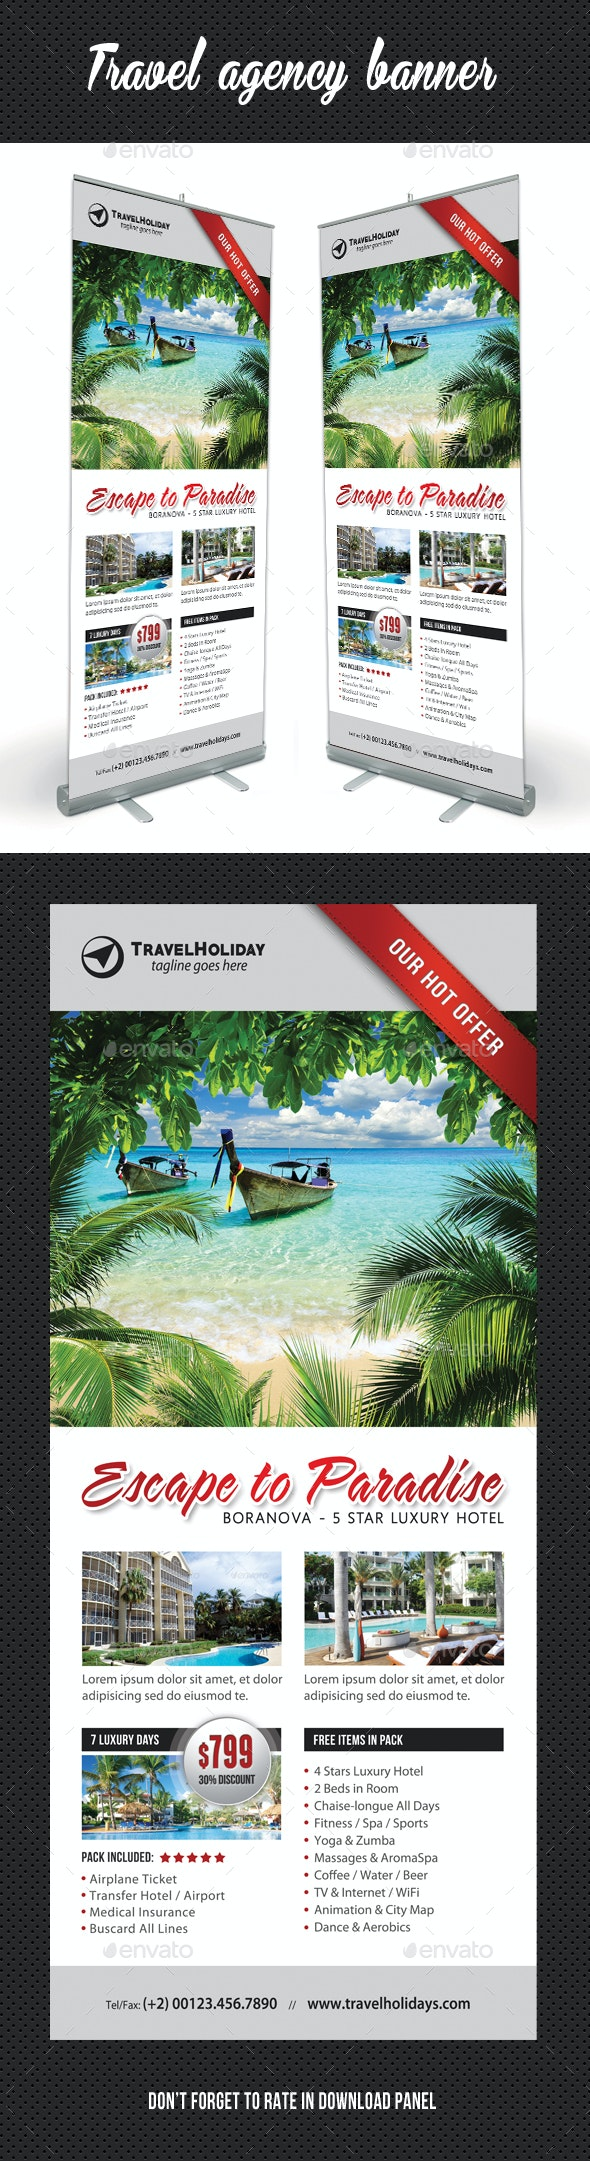 Travel Agency Banner Template 12